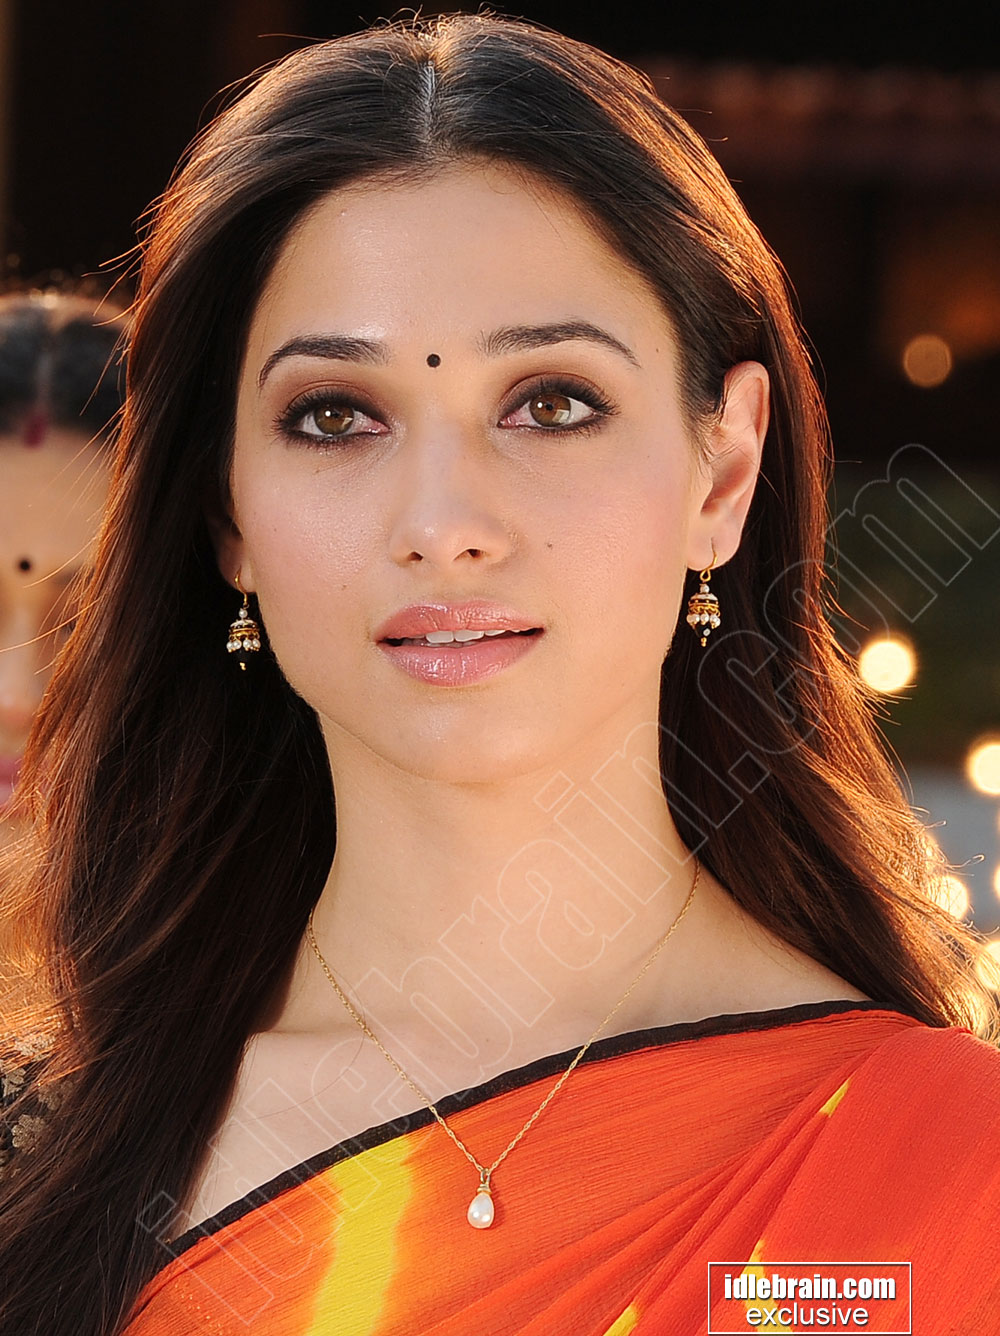 heroine tamanna first movie : xbox 360 hd dvd player for sale